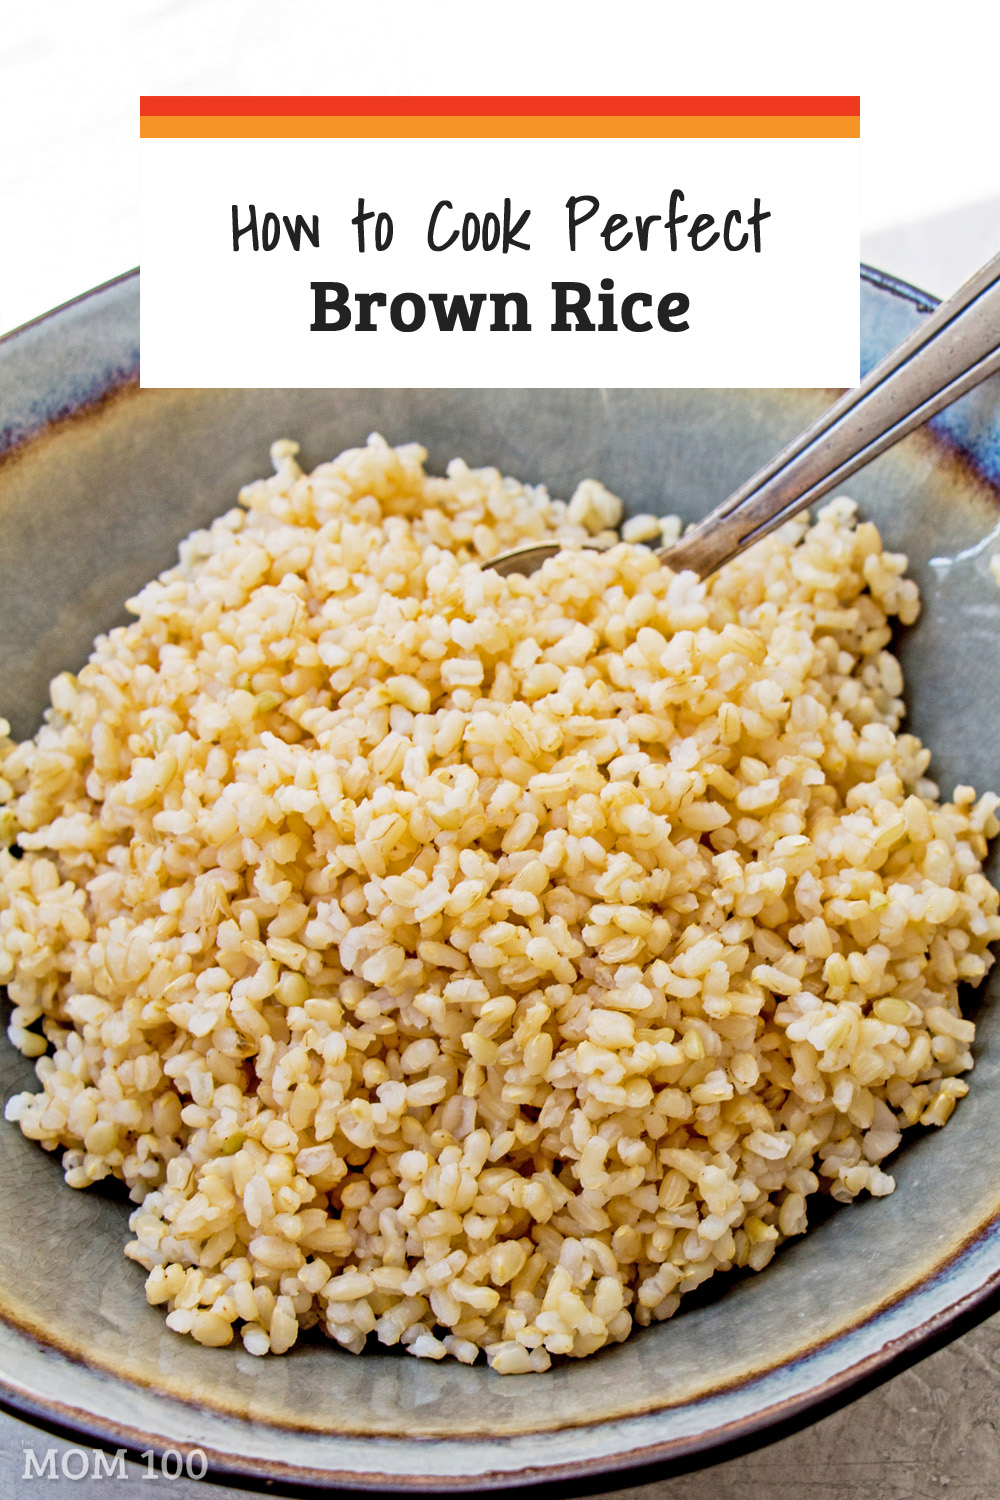 Learn How to Cook Perfect Brown Rice on the Stove—A recipe for perfect brown rice every time!  Finally get over your brown rice fear and get that ideal bowl of plump, chewy little nutritious grains.